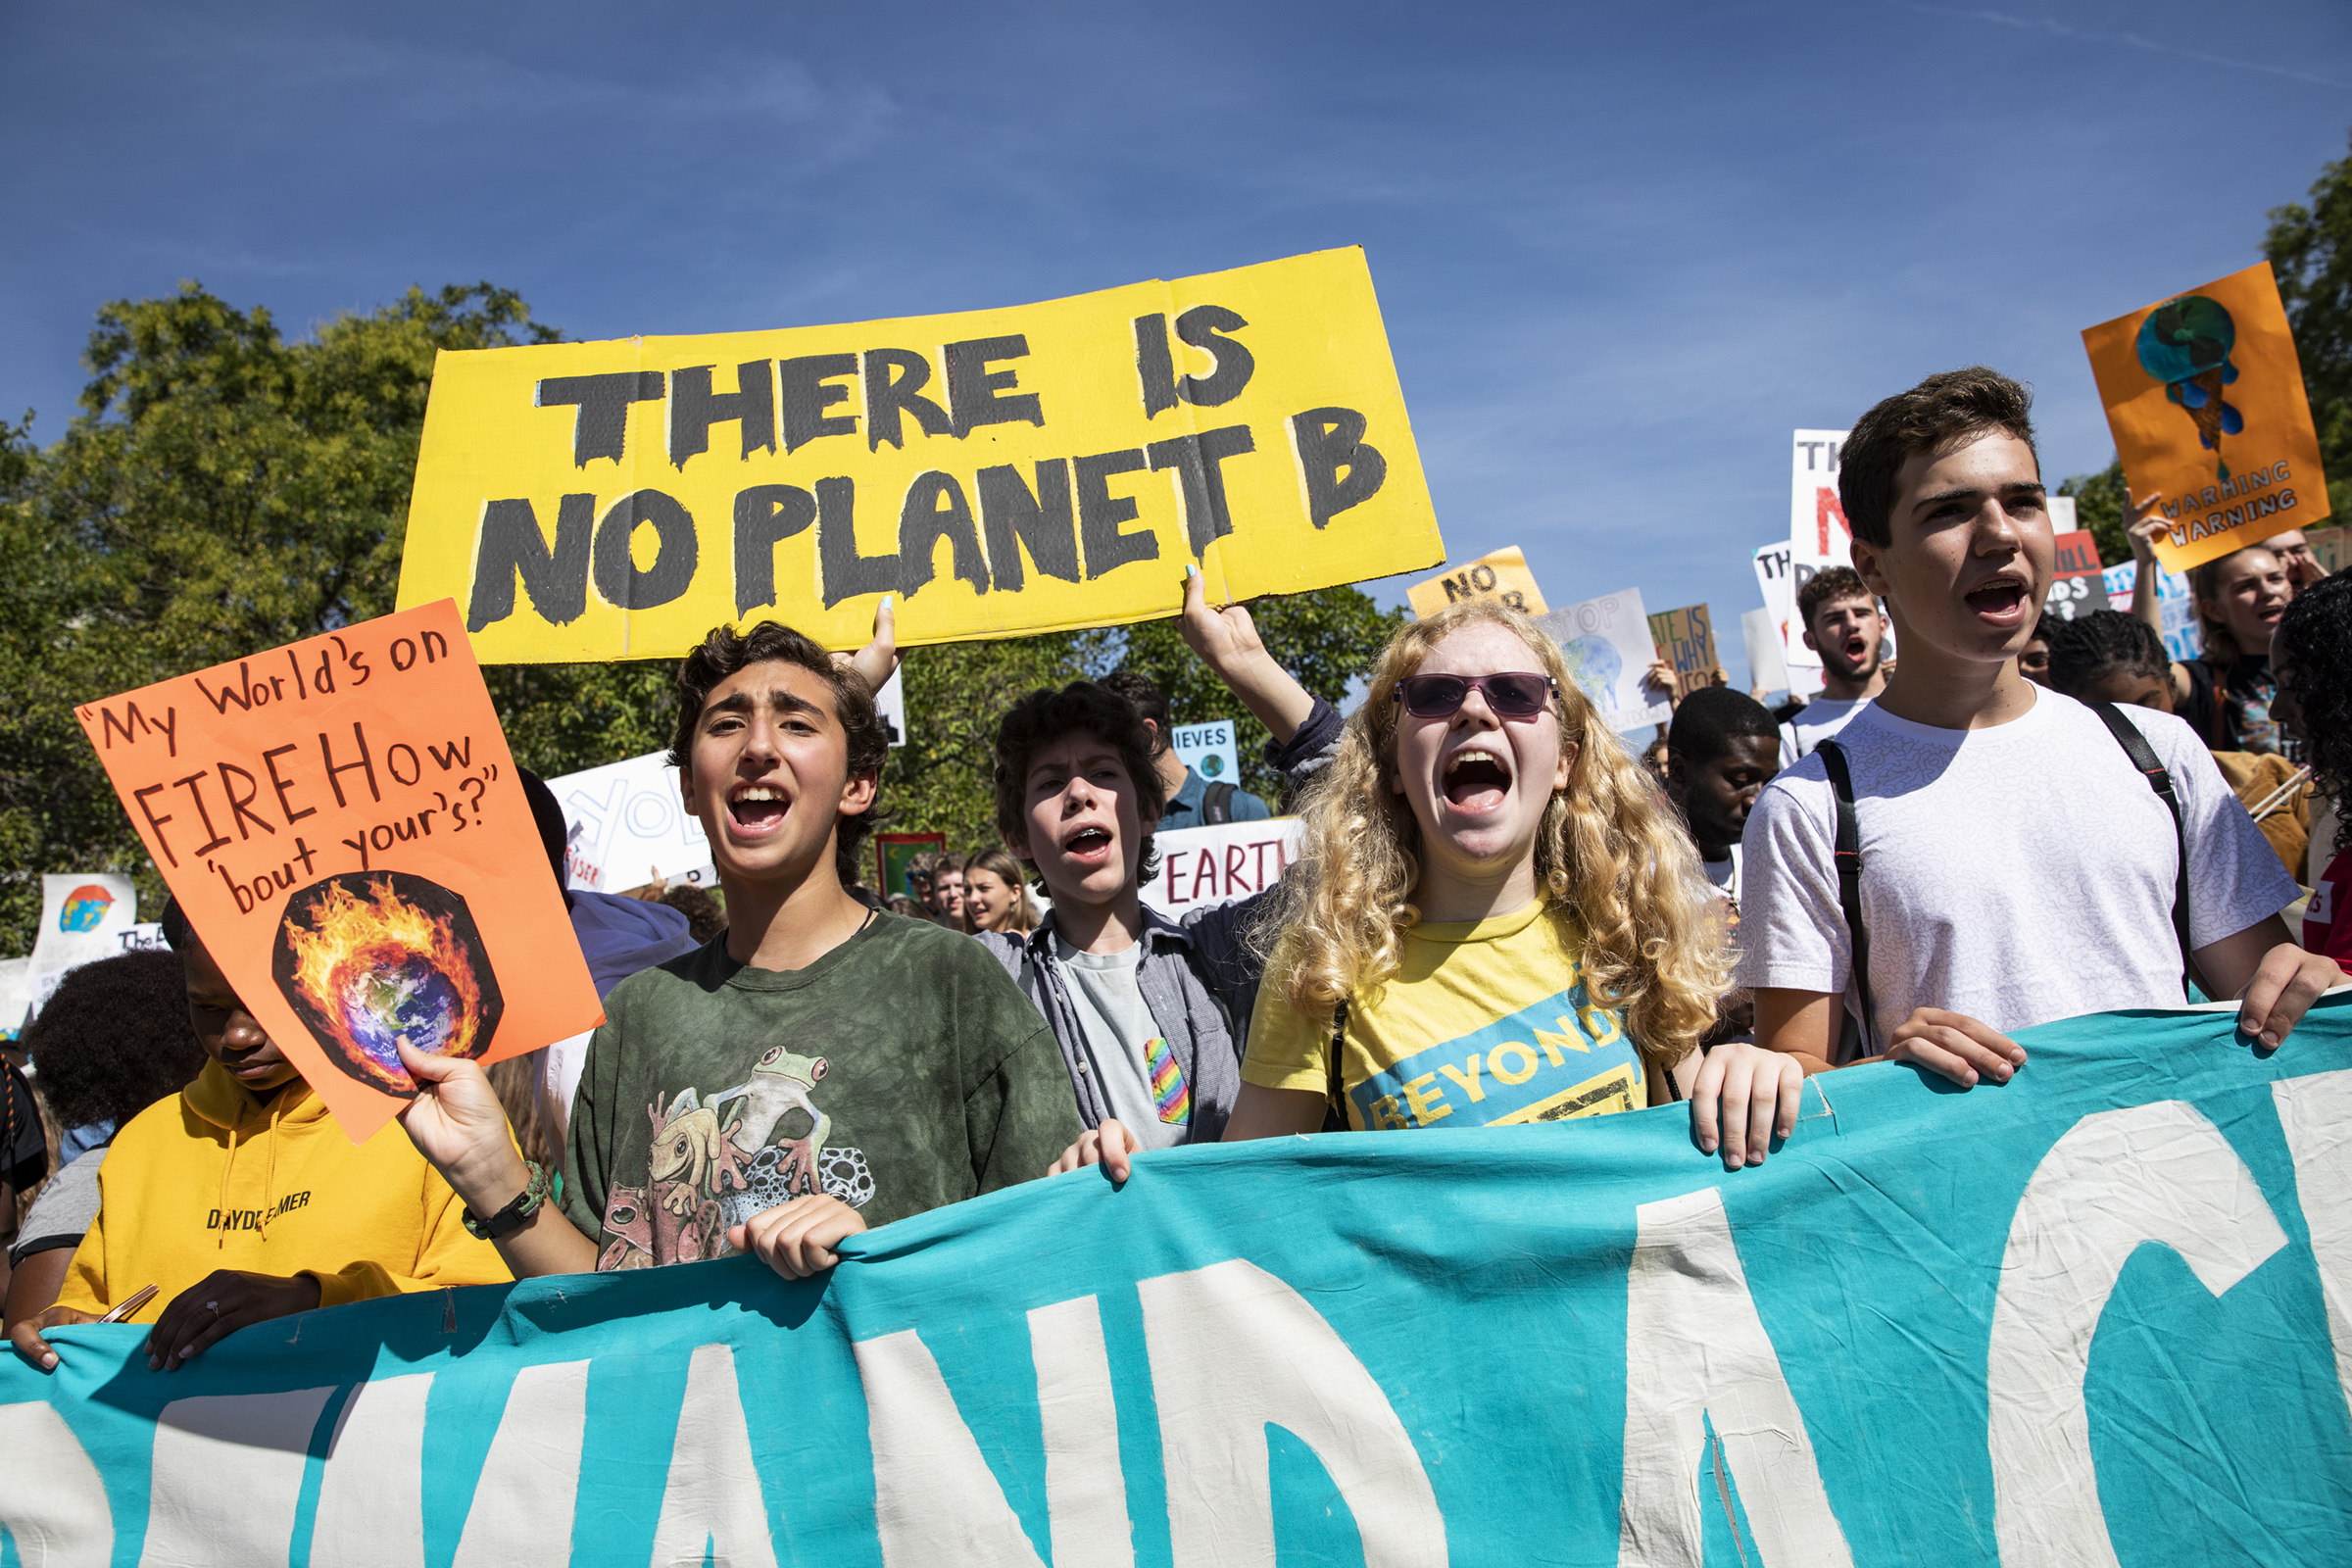 Activists gather in John Marshall Park for the Global Climate Strike protests in Washington, D.C. on Sept. 20, 2019.